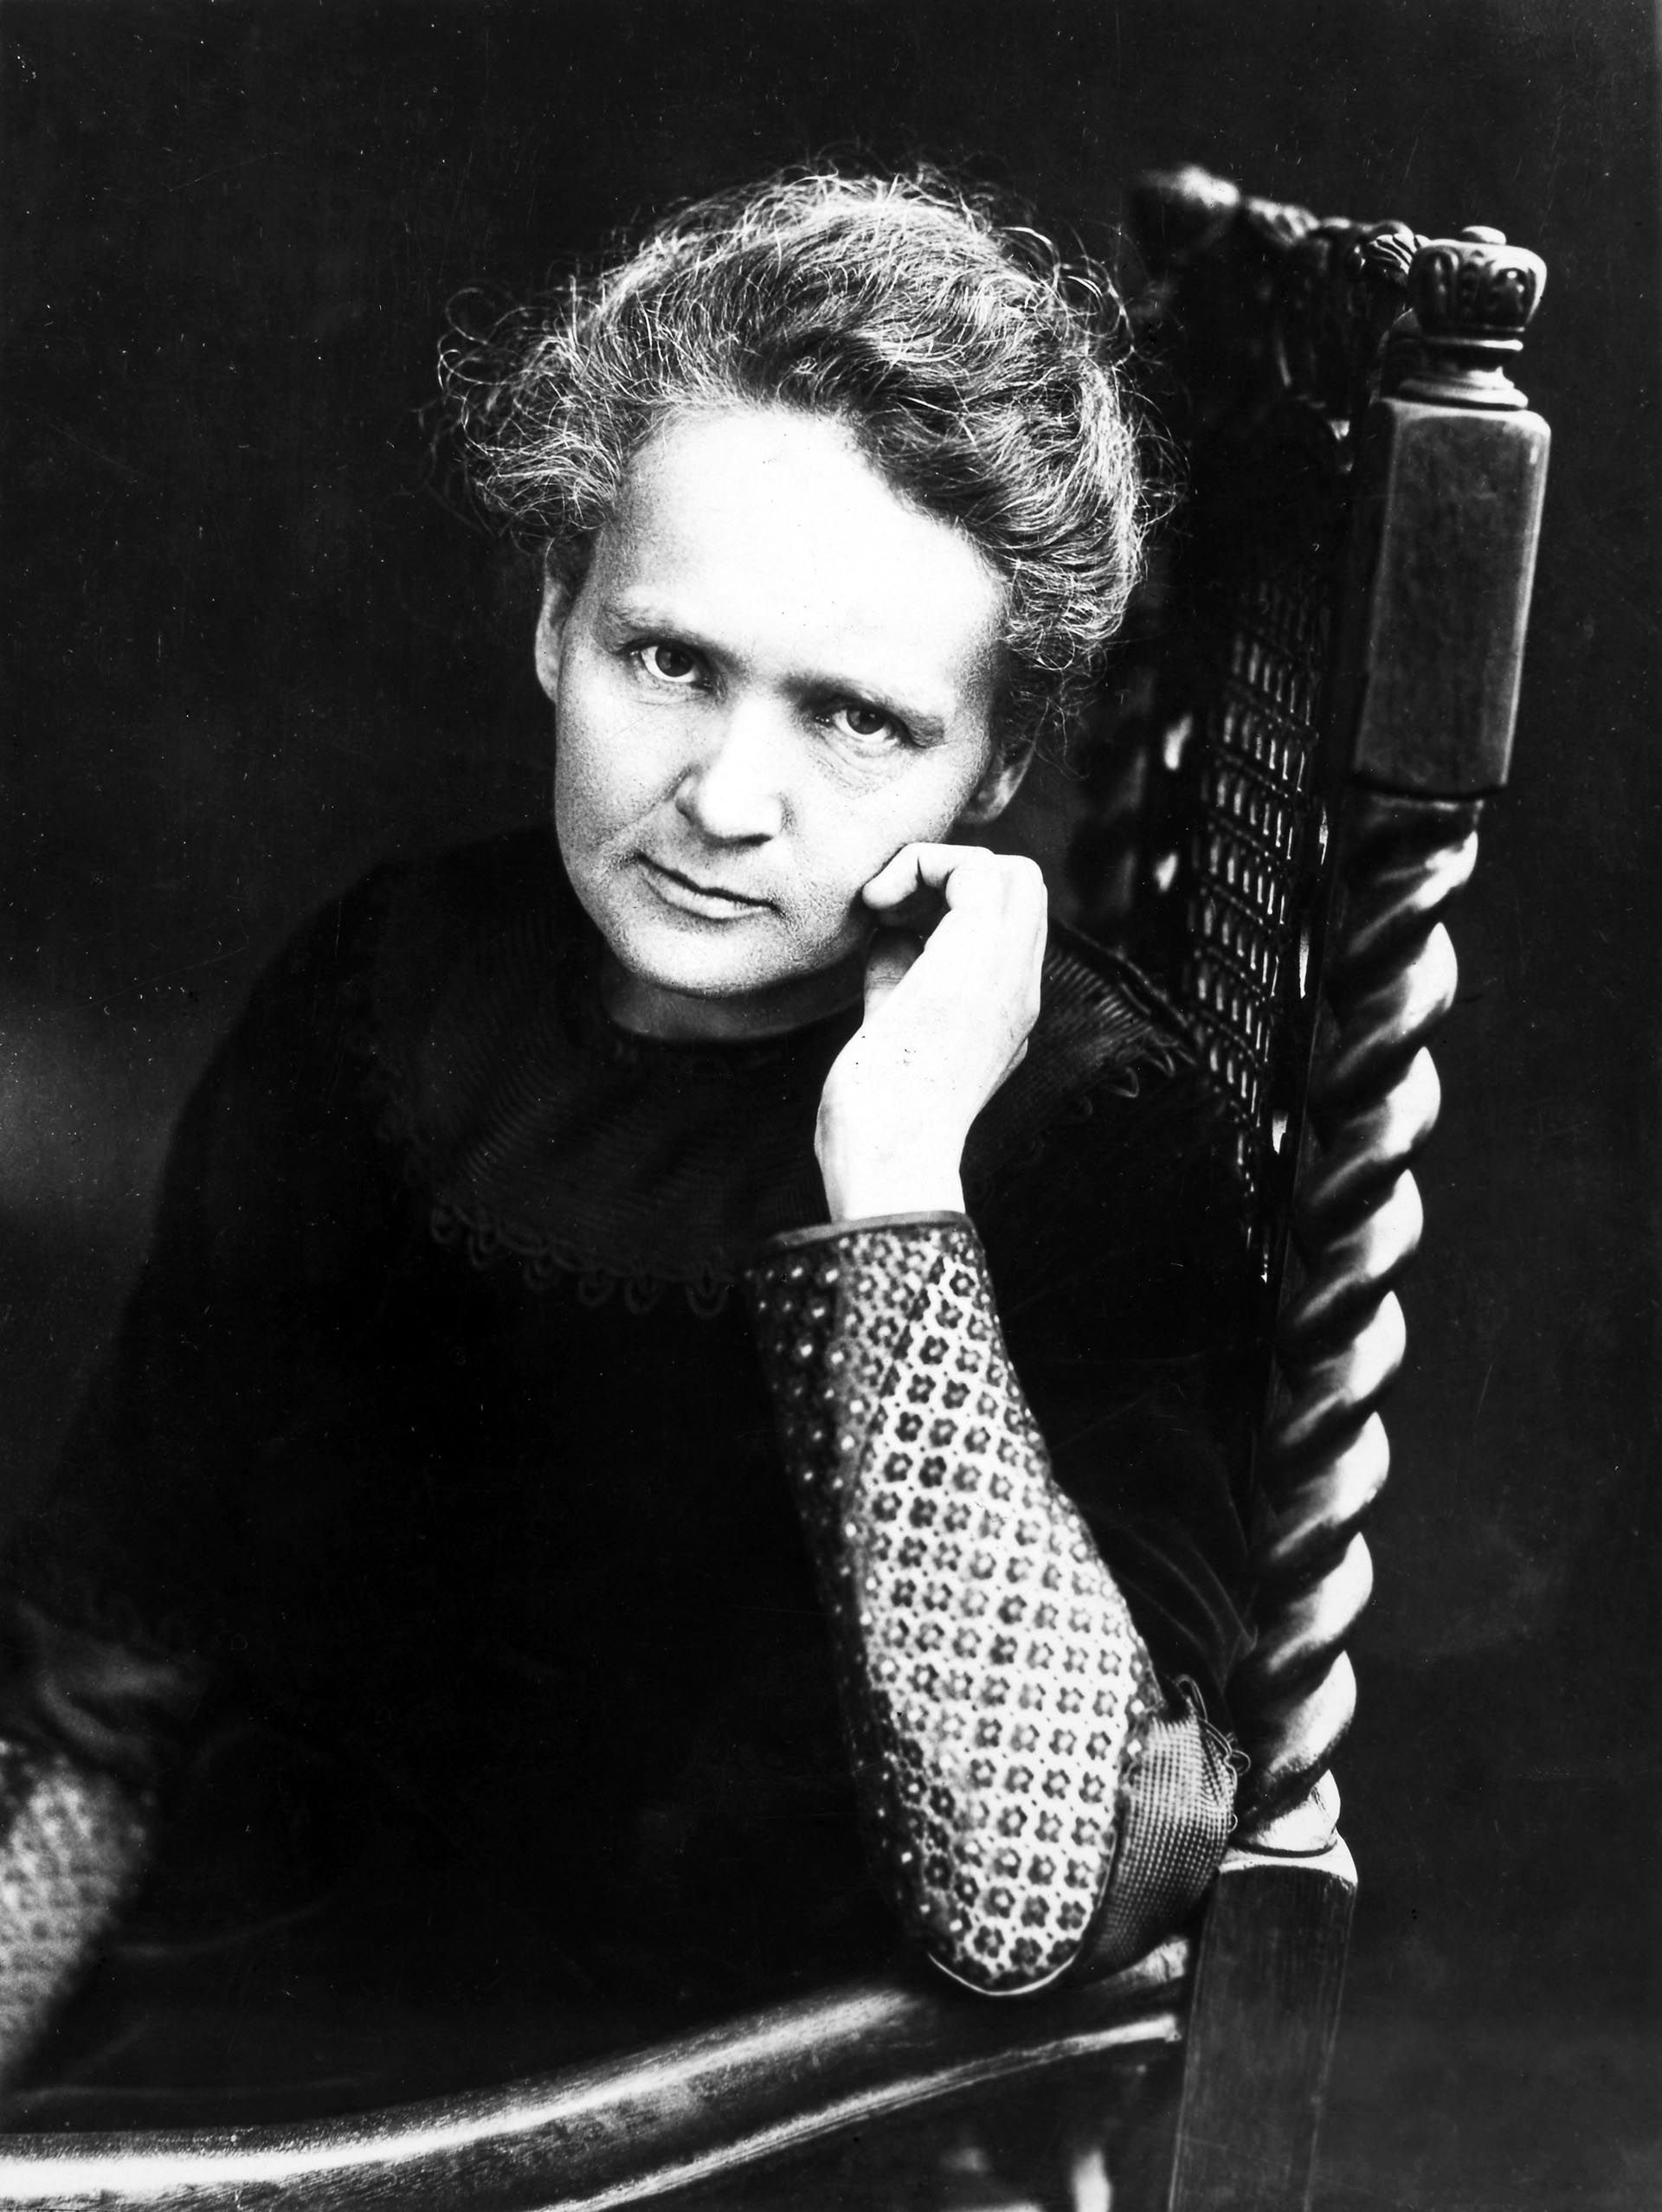 Marie Curie (Crédito: Shutterstock)